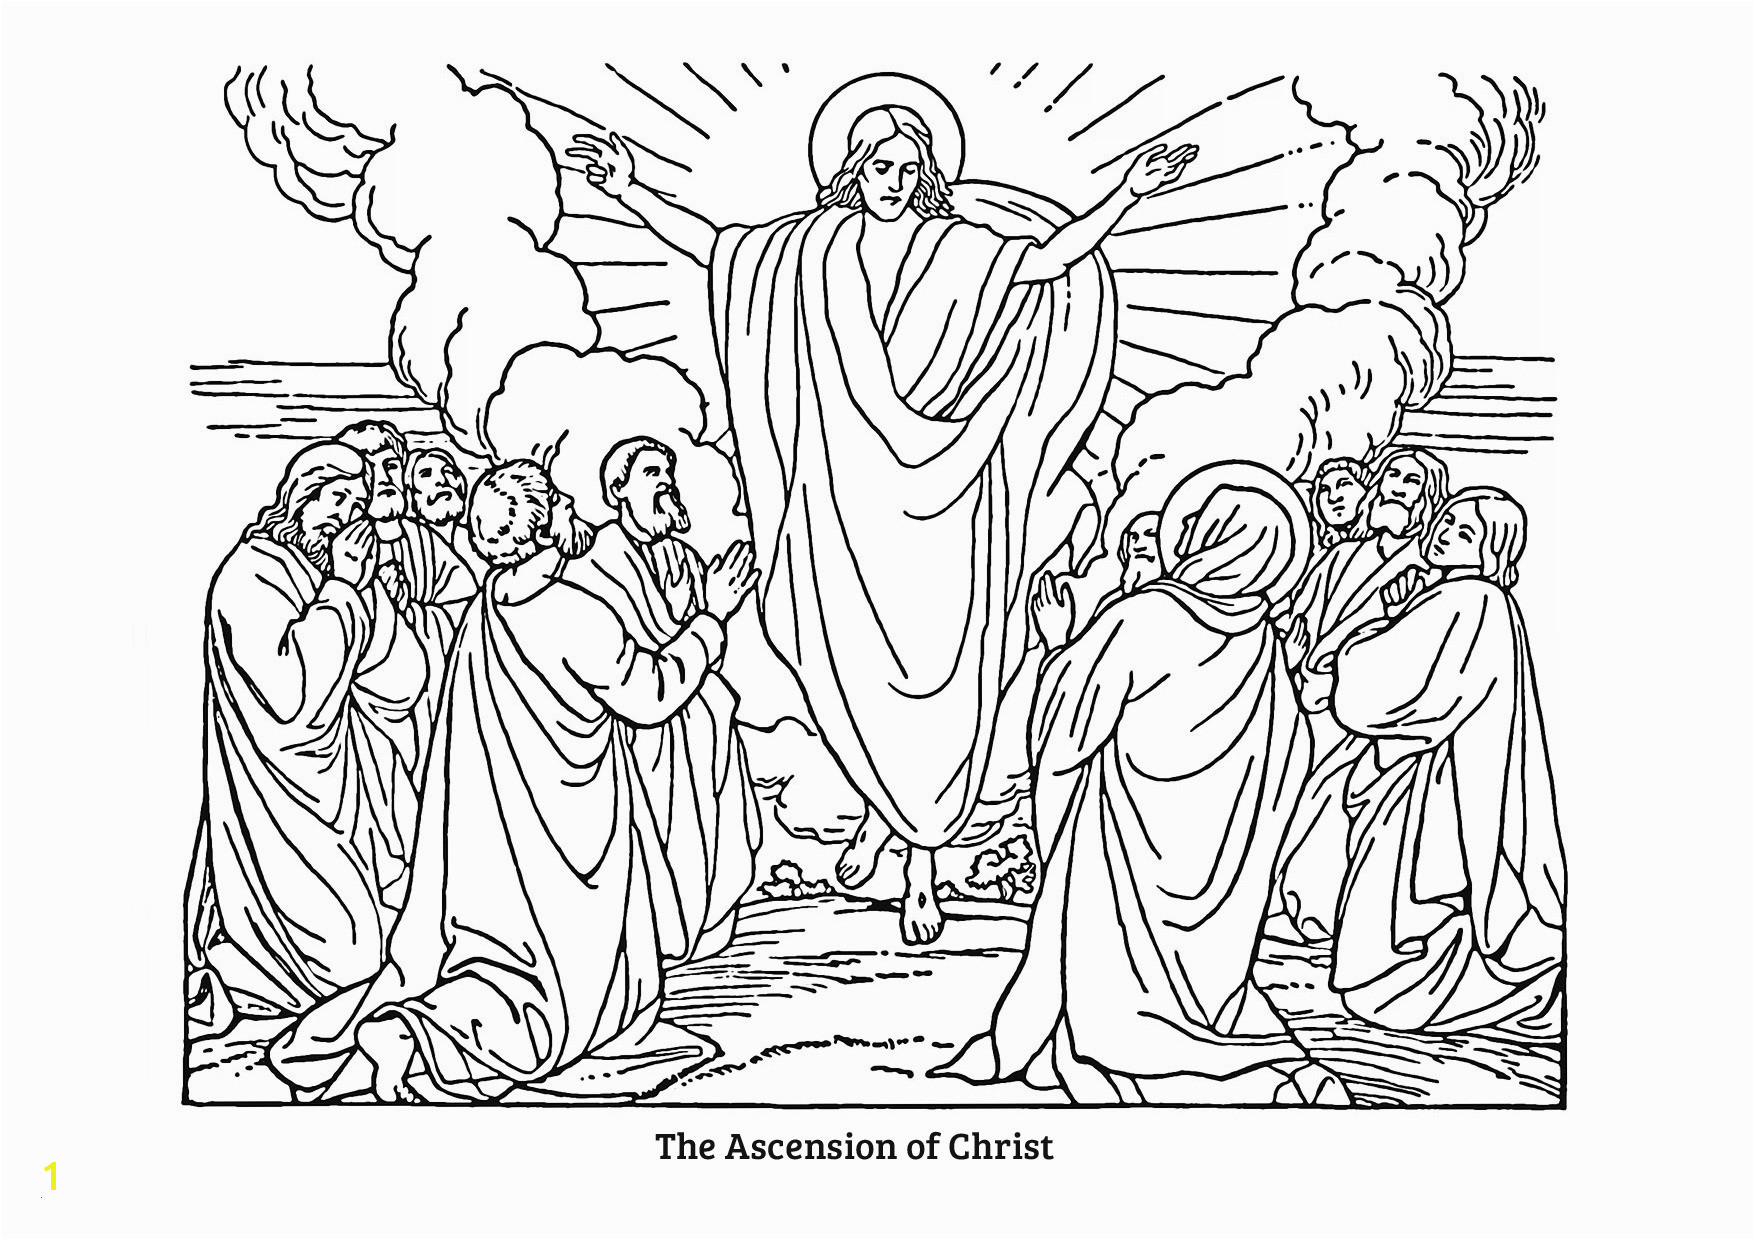 Ascension Coloring Page Jesus ascension Coloring Pages Awesome Jesus ascension Coloring